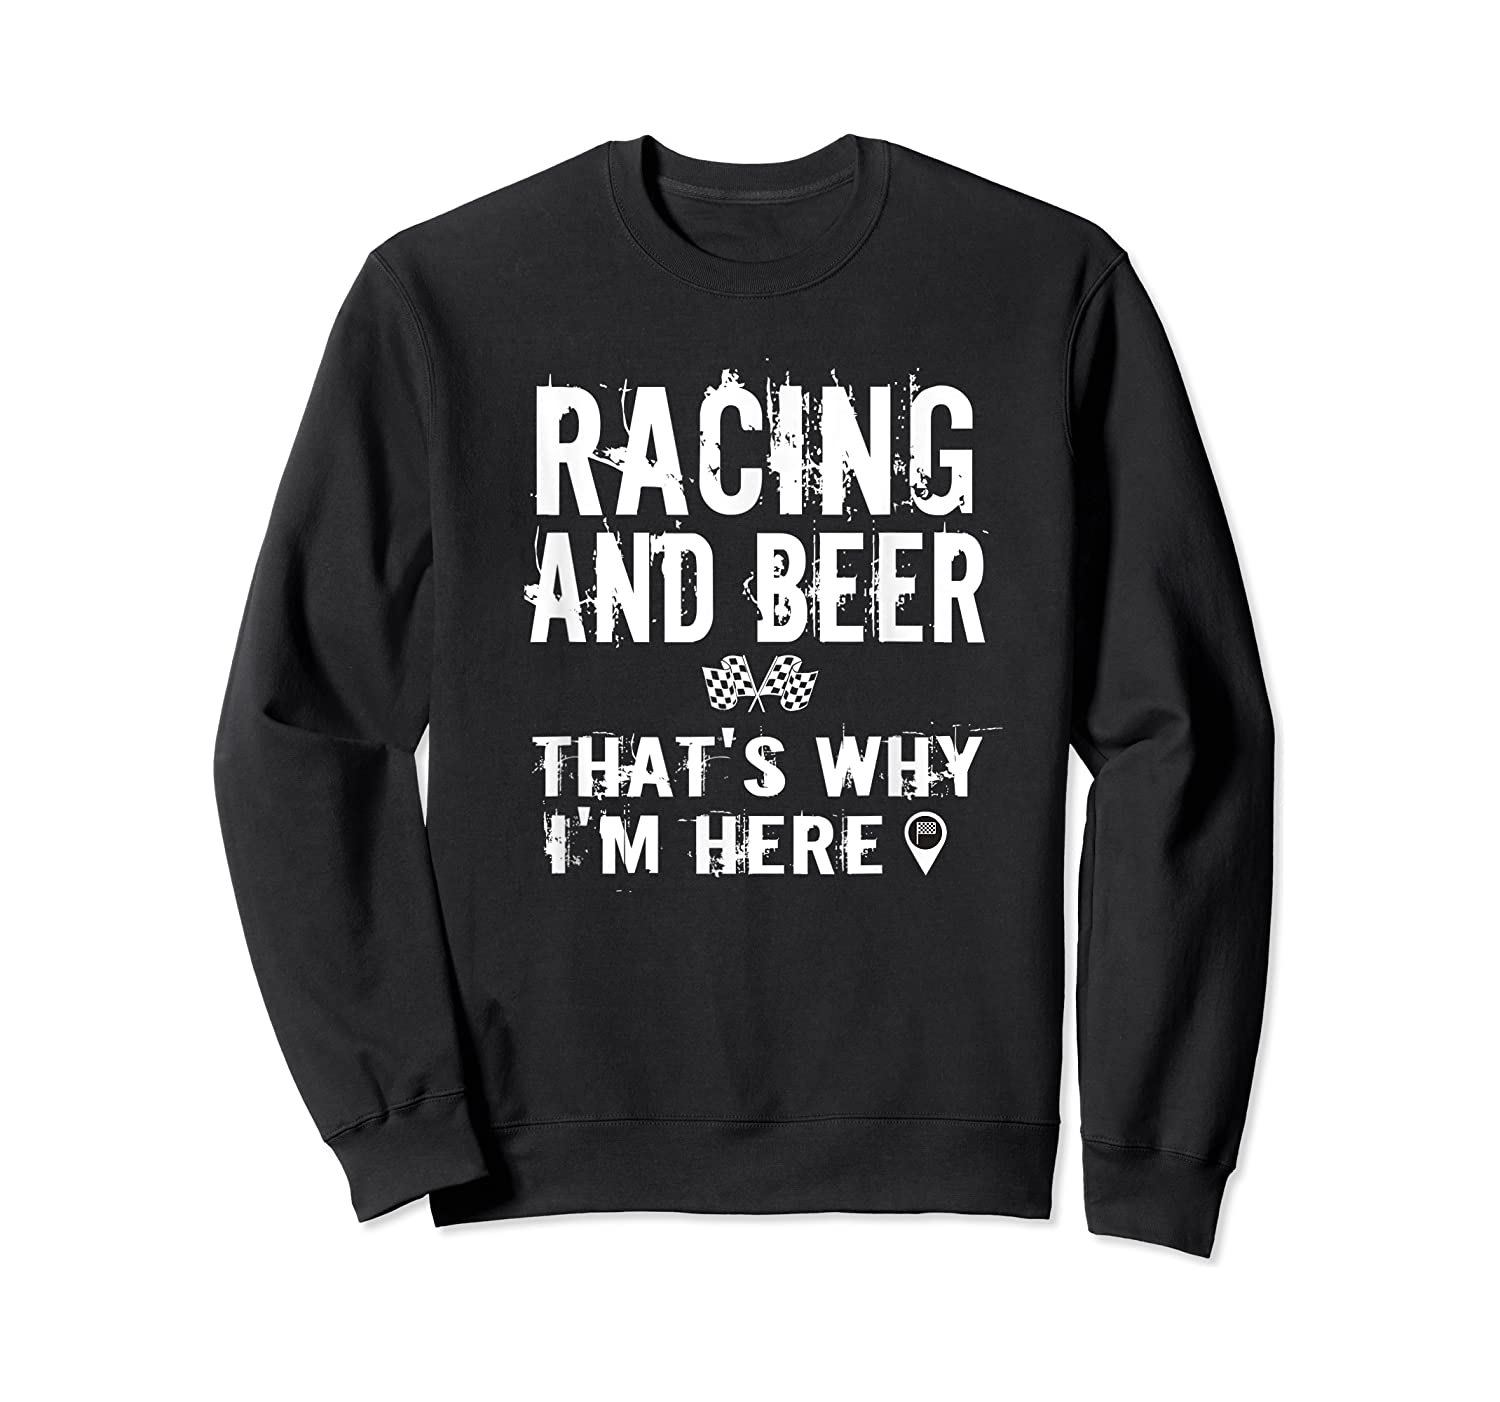 Race Car Track Apparel Racing And Beer That's Why I'm Here Shirts Crewneck Sweater